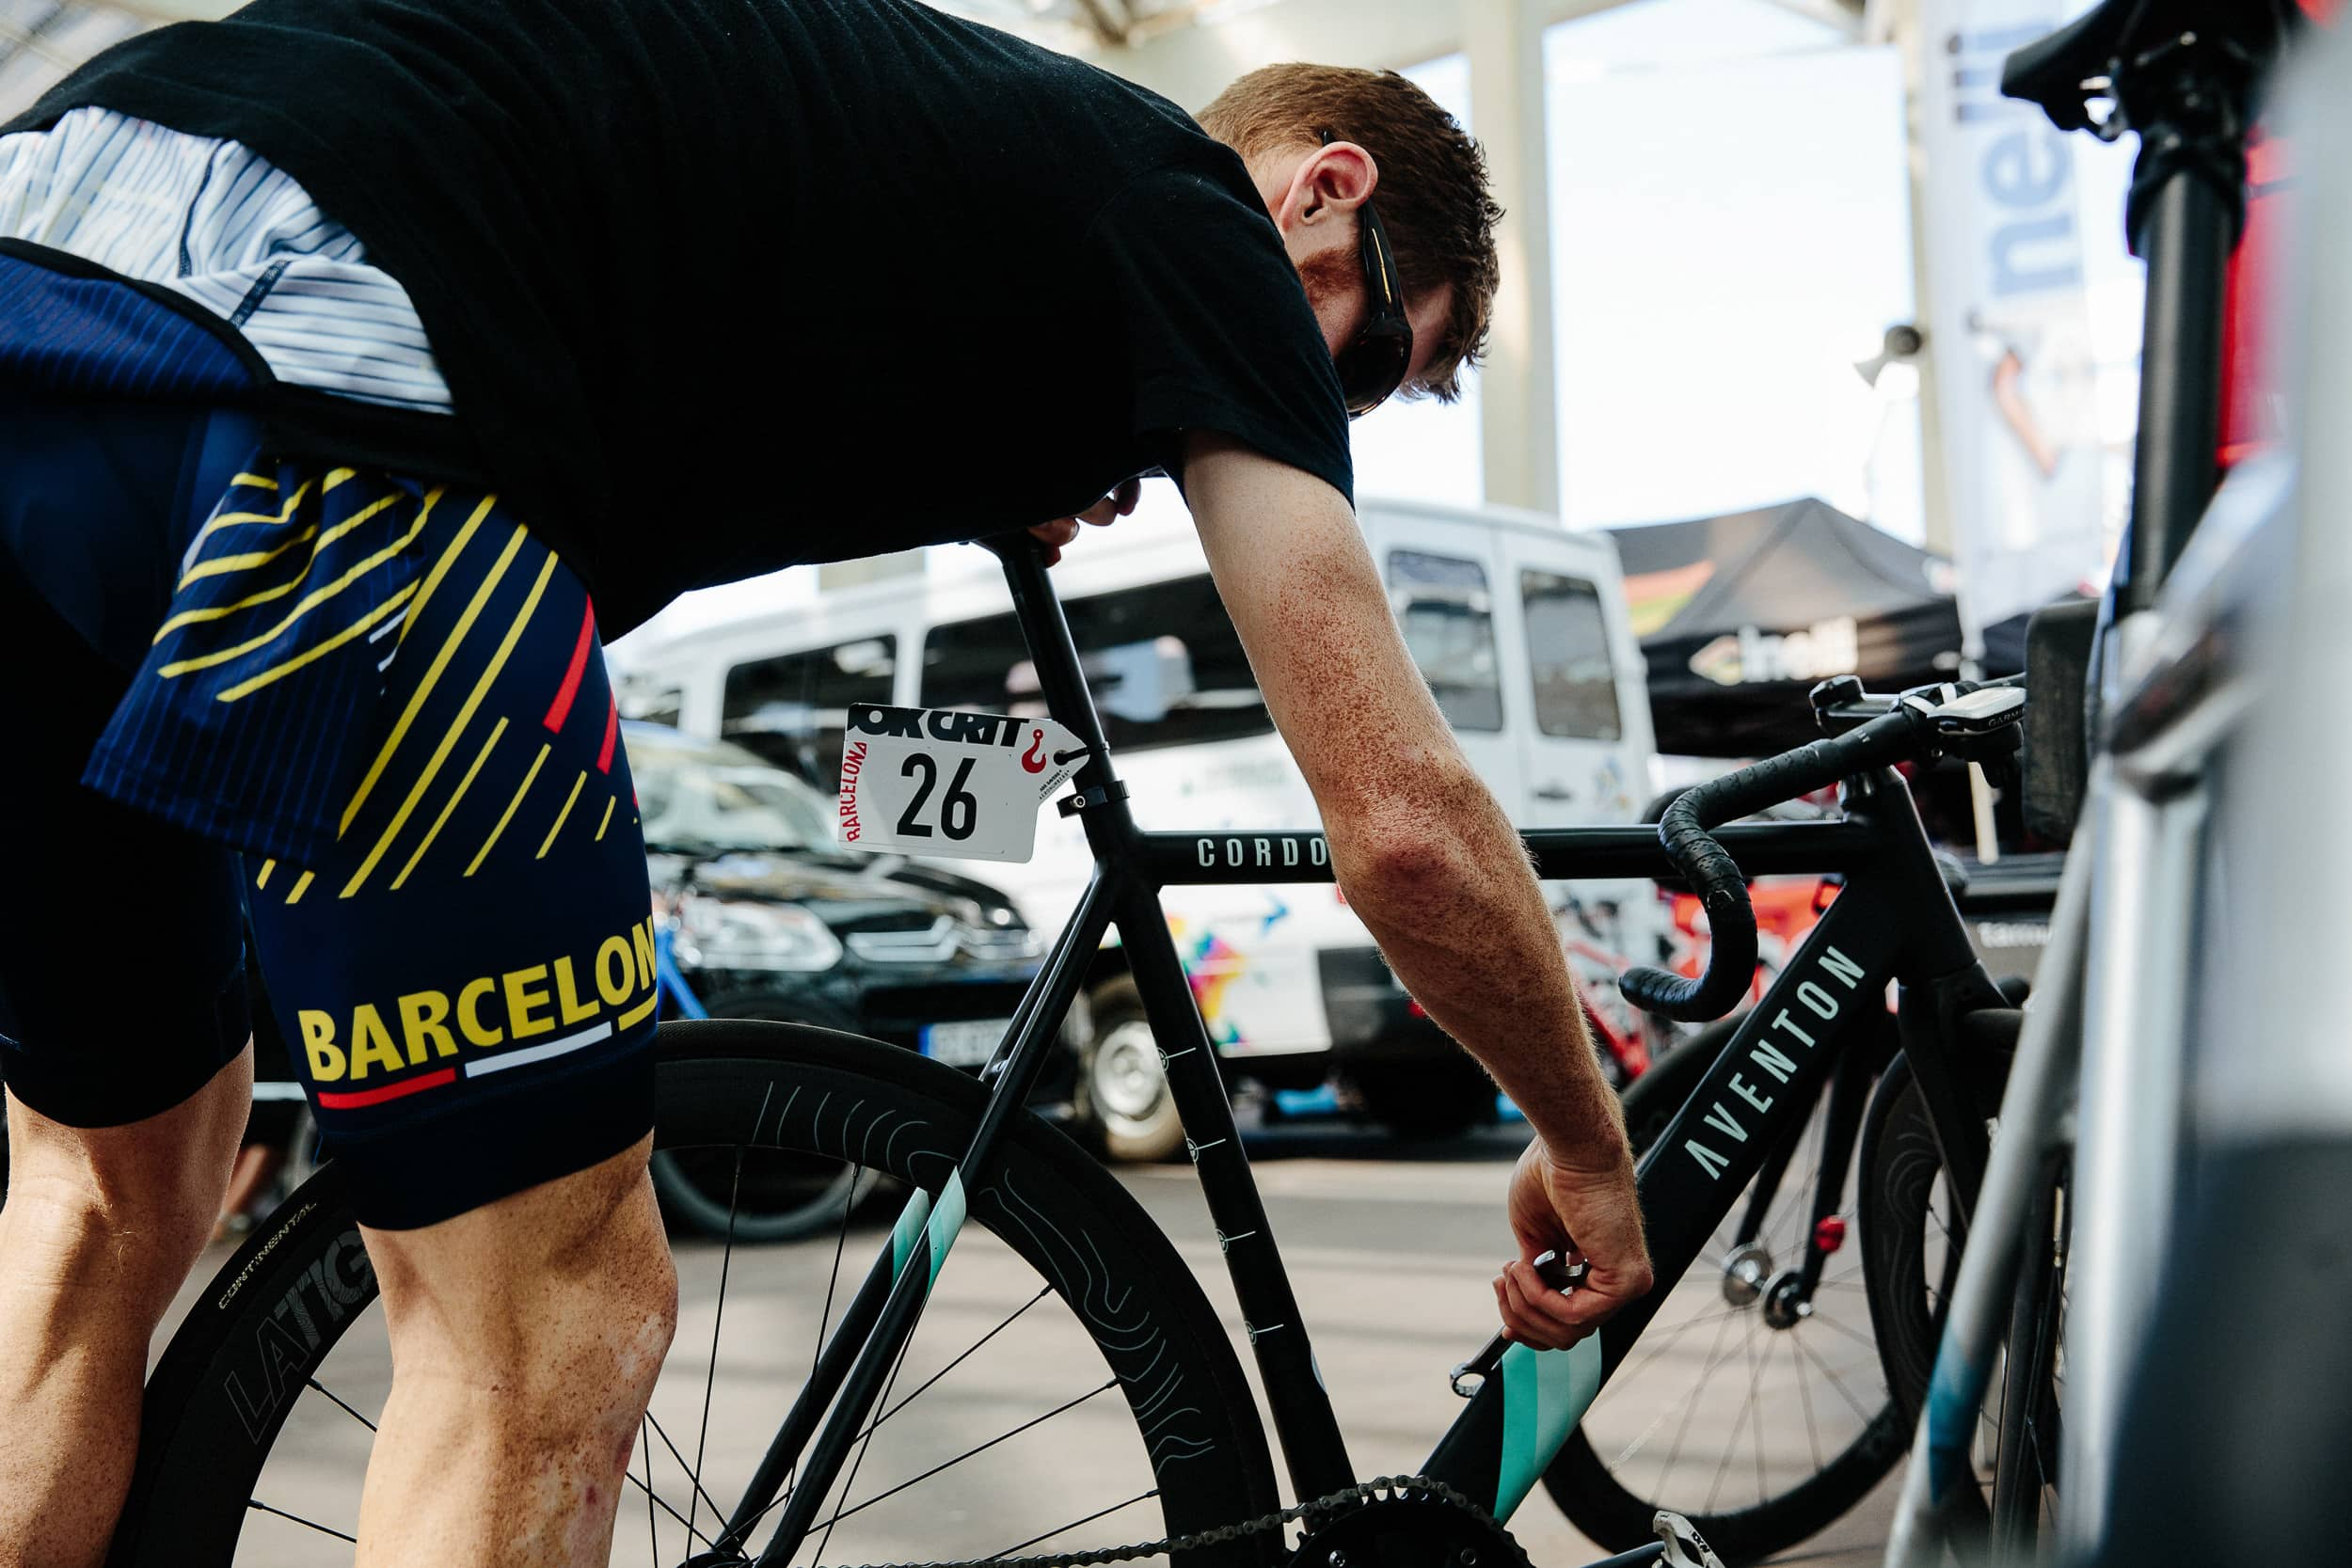 BJØRN LEXIUS | PHOTOGRAPHER - People-, Sport- und Werbefotograf Hamburg AVENTON x RED HOOK CRIT BARCELONA 2017